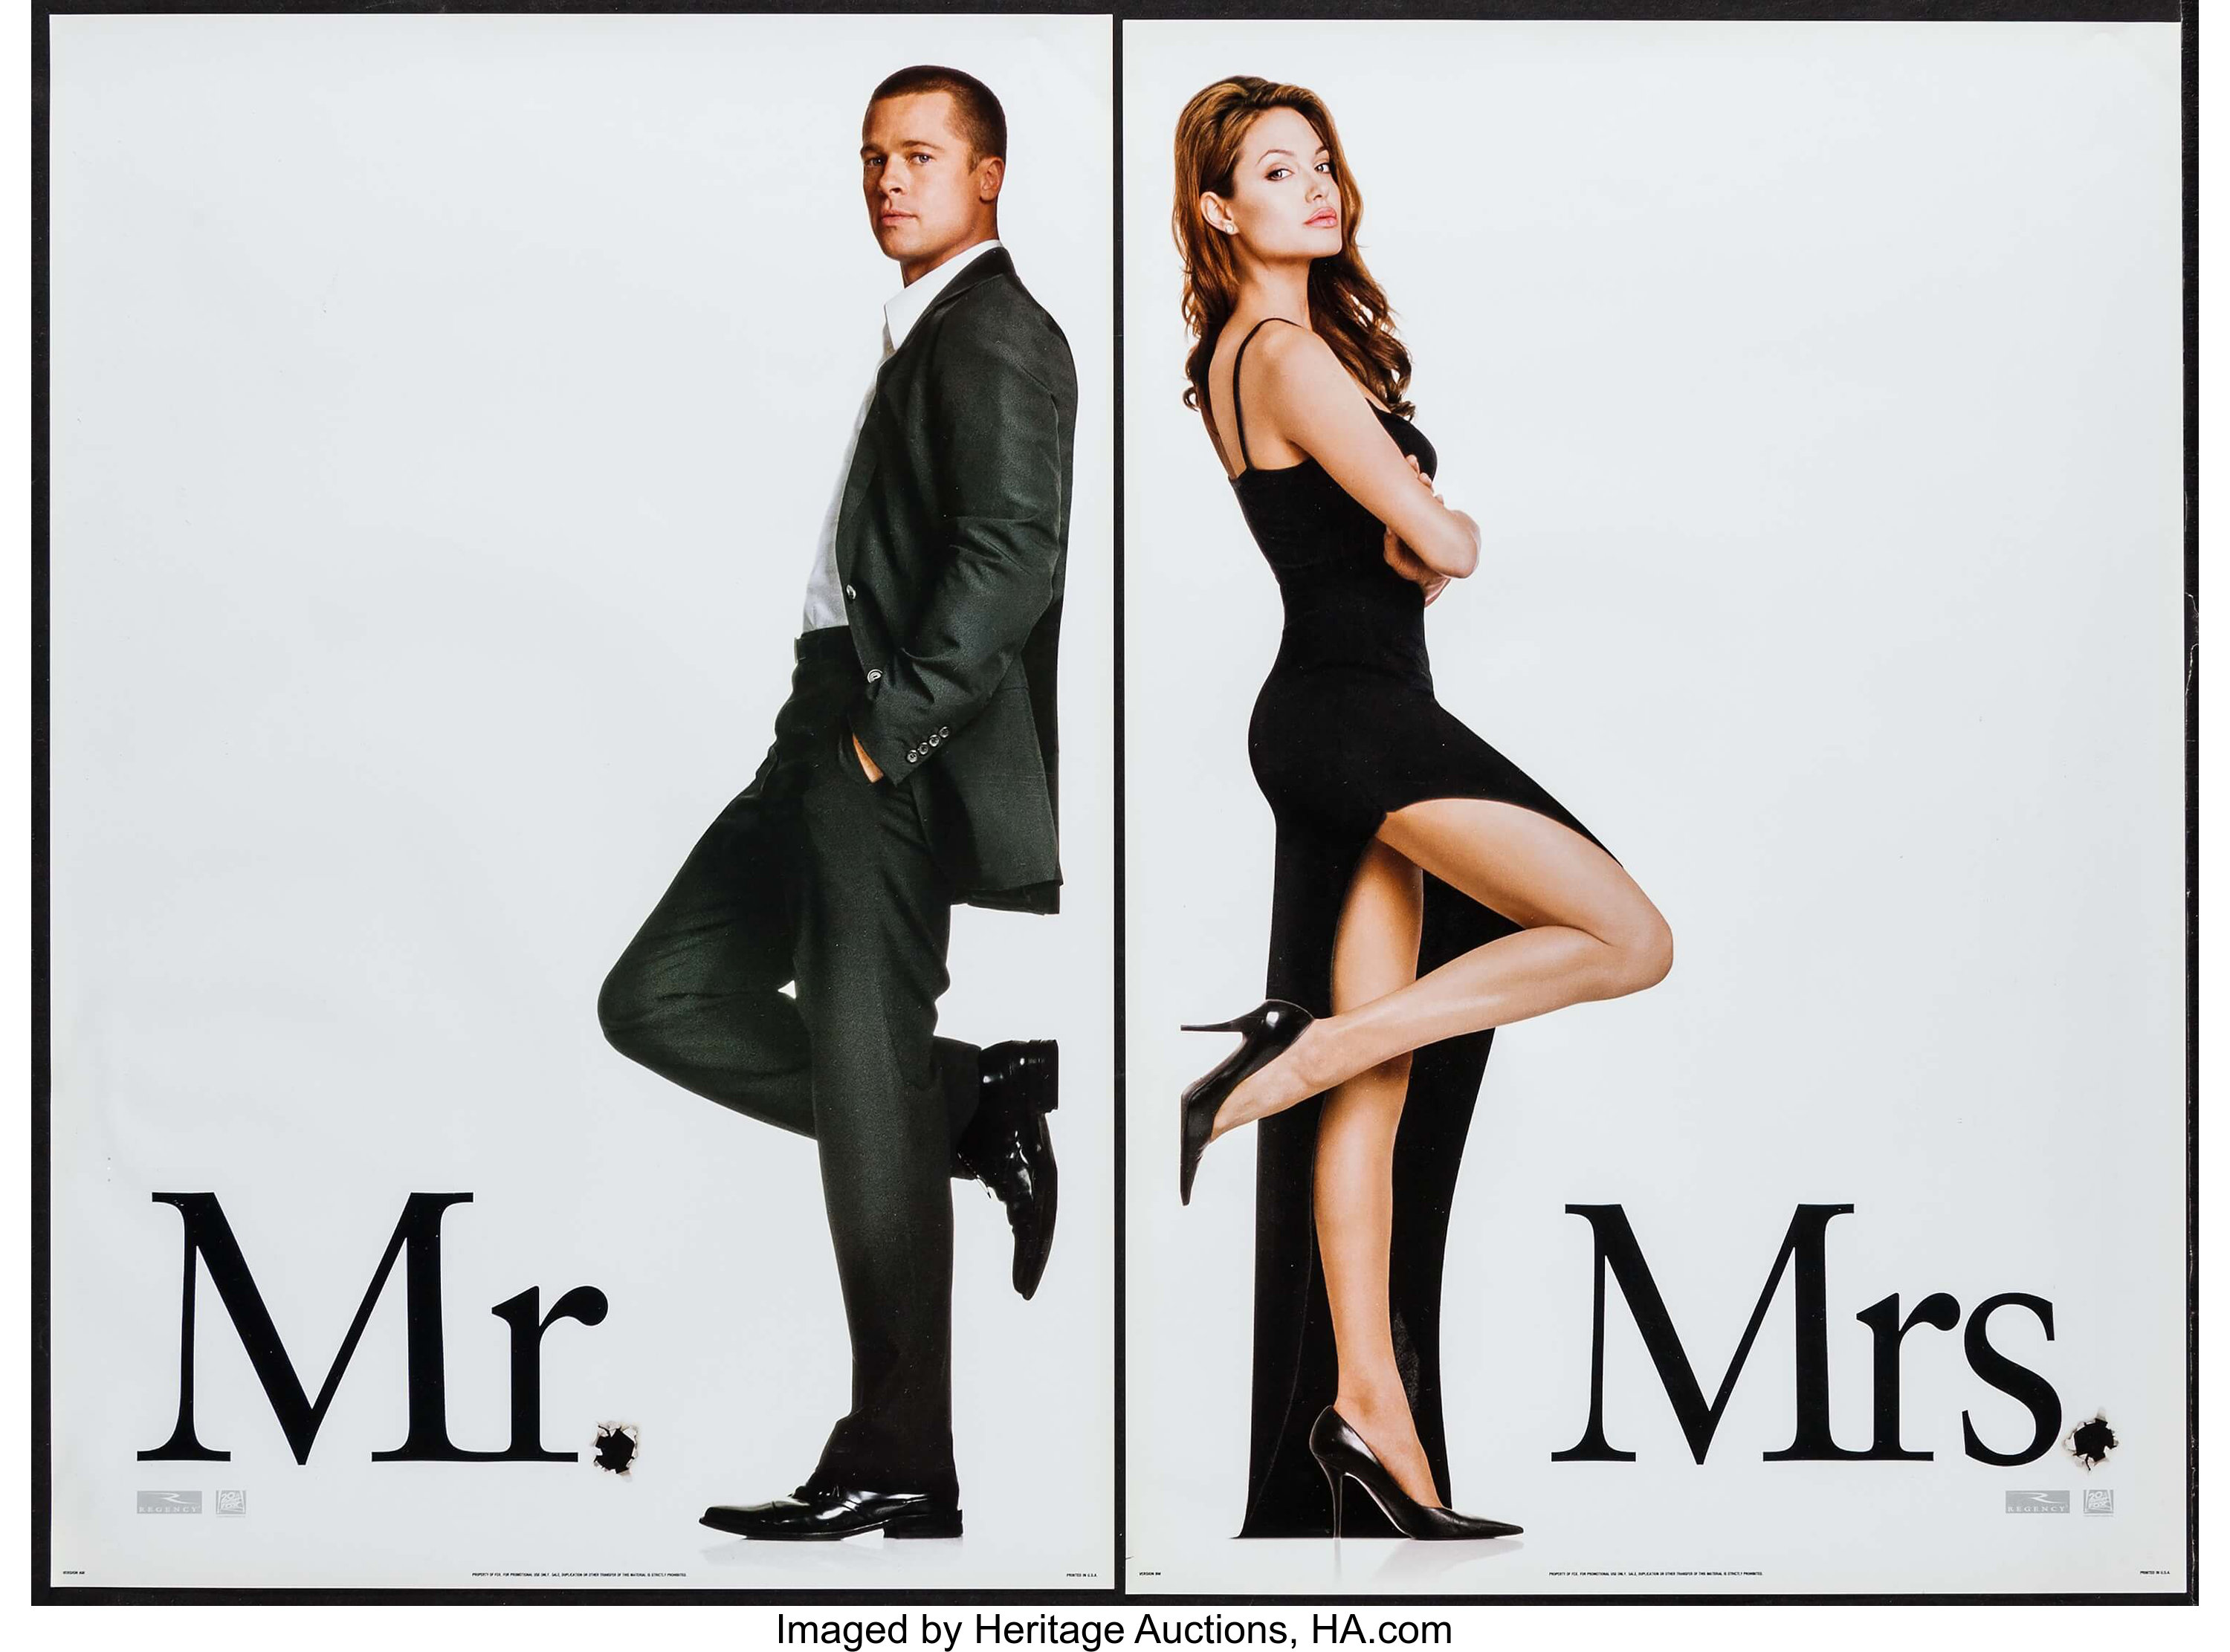 Mr Mrs Smith 20th Century Fox 2005 Mini Posters 2 13 5 Lot 51322 Heritage Auctions